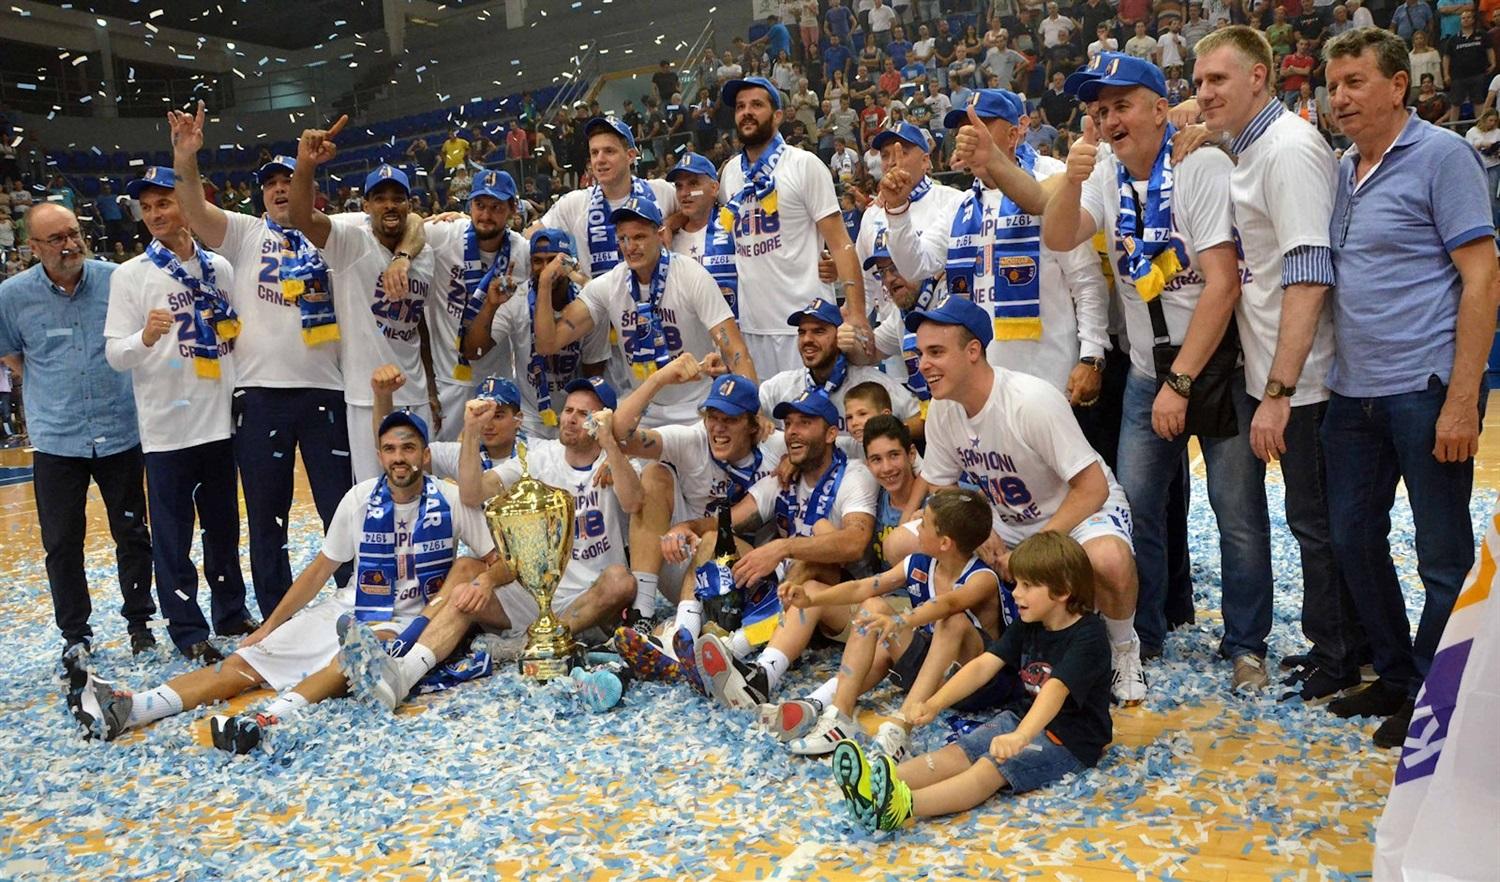 Mornar Bar champ Montenegrin league 2018 (photo Mornar Bar)